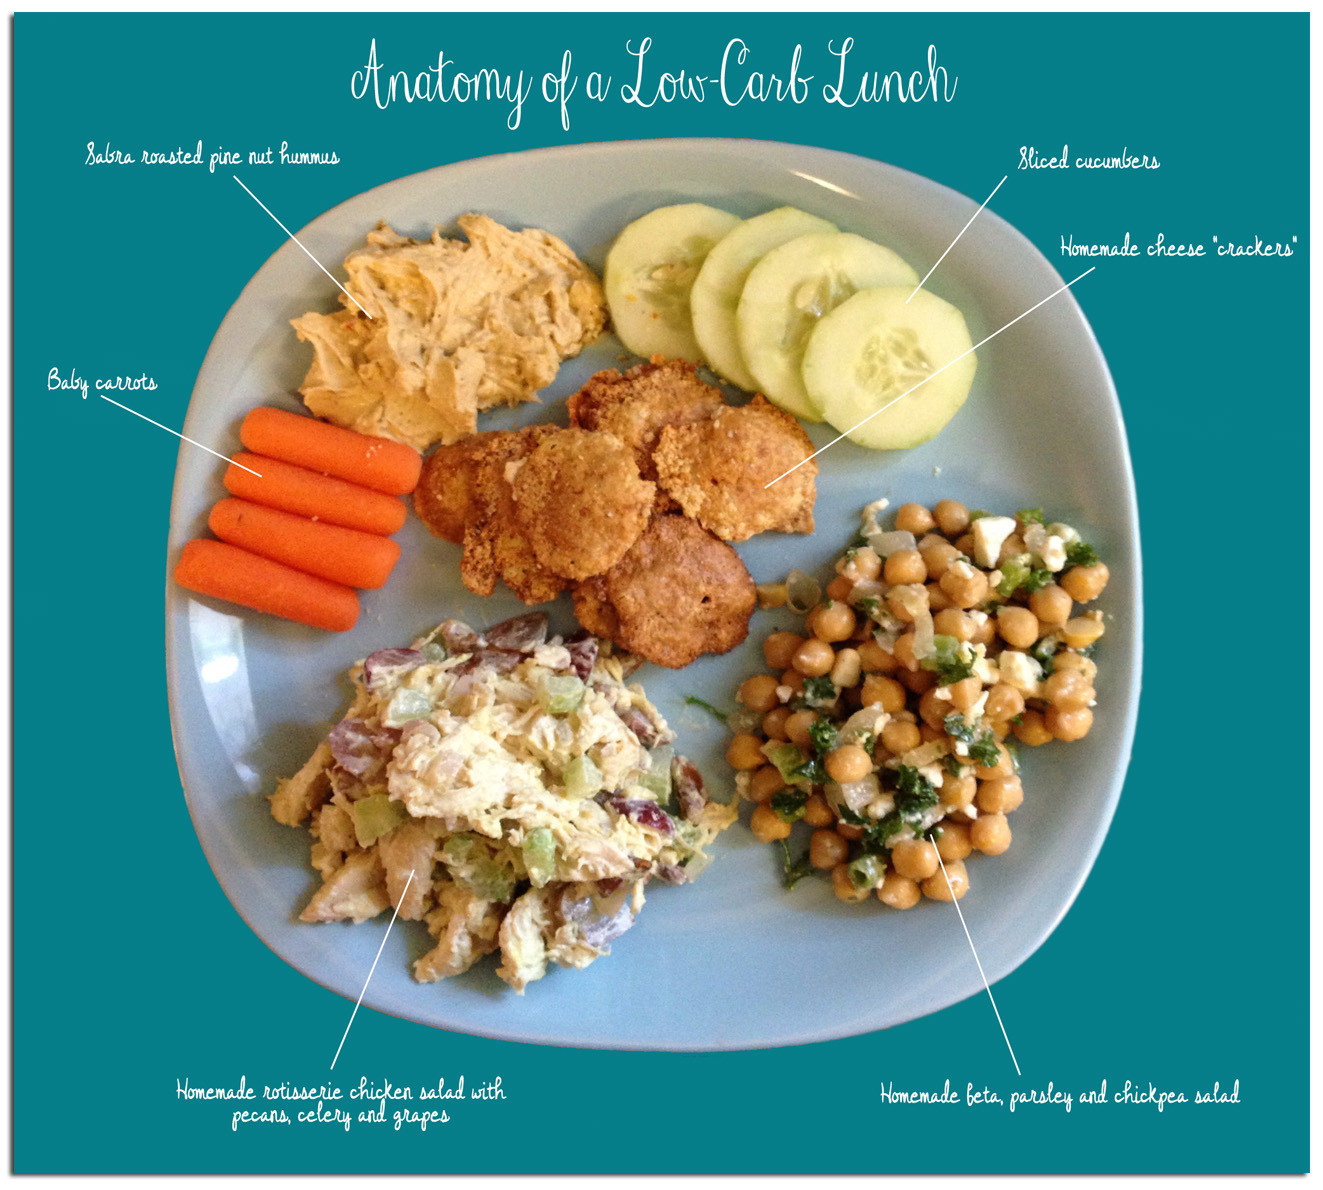 Healthy Filling Dinners  Anatomy of a low carb lunch healthy lunch ideas with